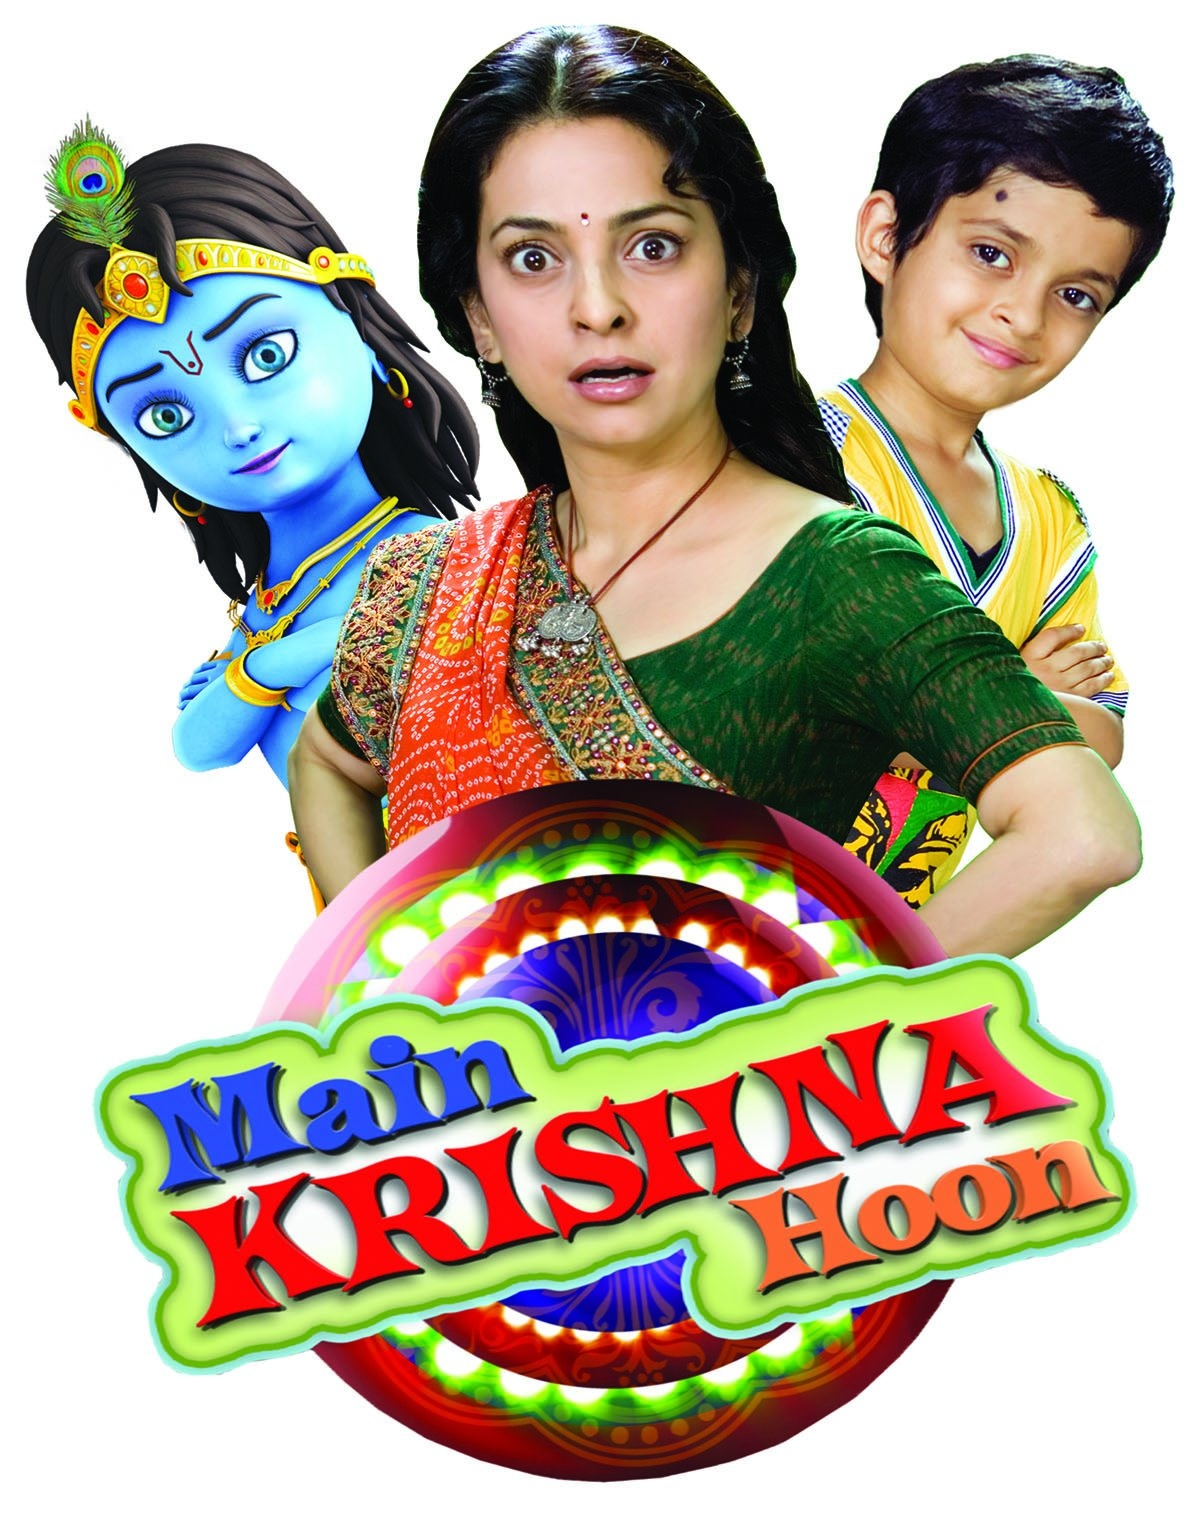 Main Krishna Hoon - Movie Poster #3 (Original)